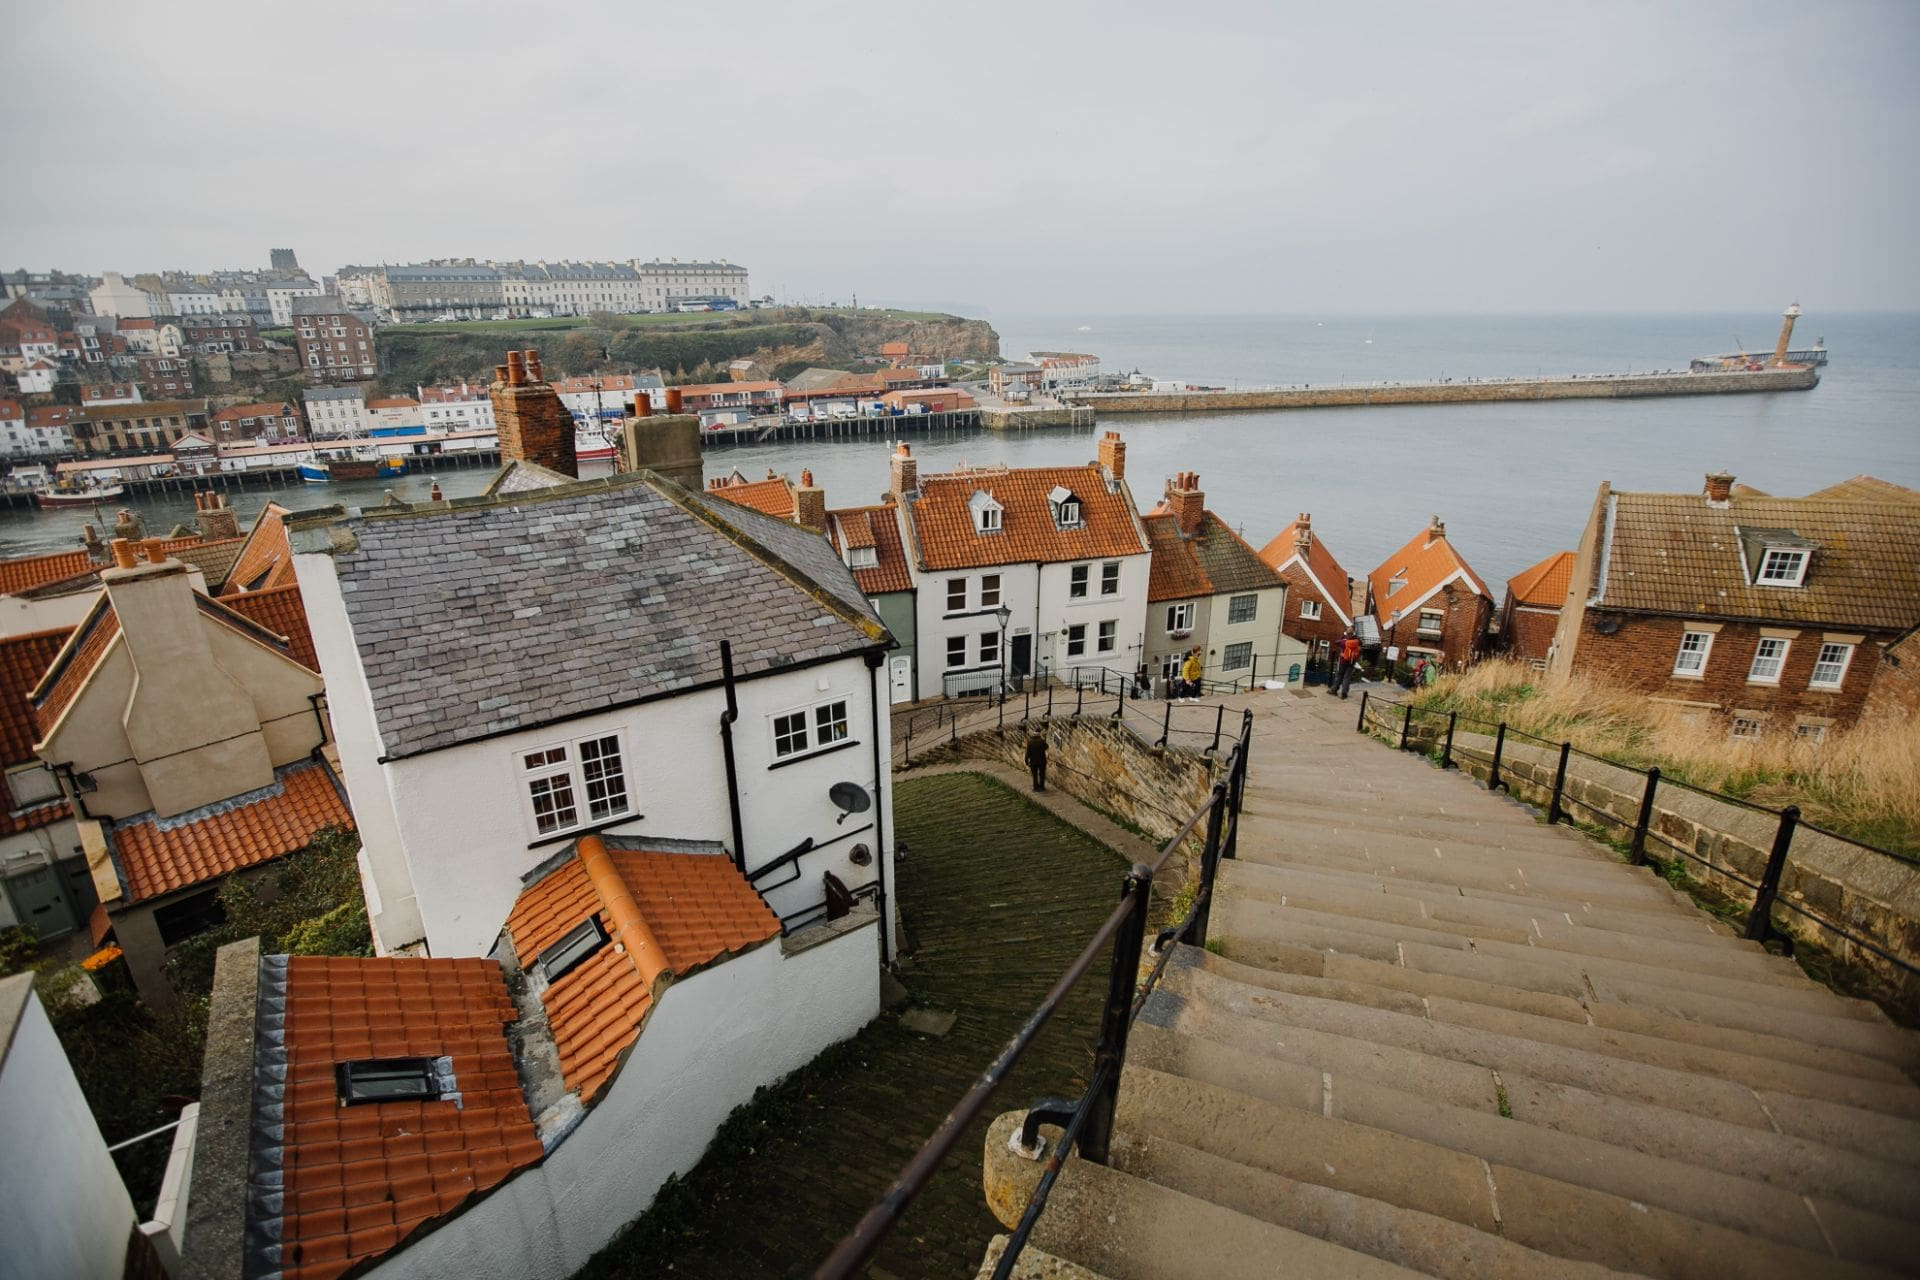 steps-leading-down-to-harbour-in-cute-british-seaside-town-whitby-robin-hoods-bay-day-trips-from-leeds-england-uk